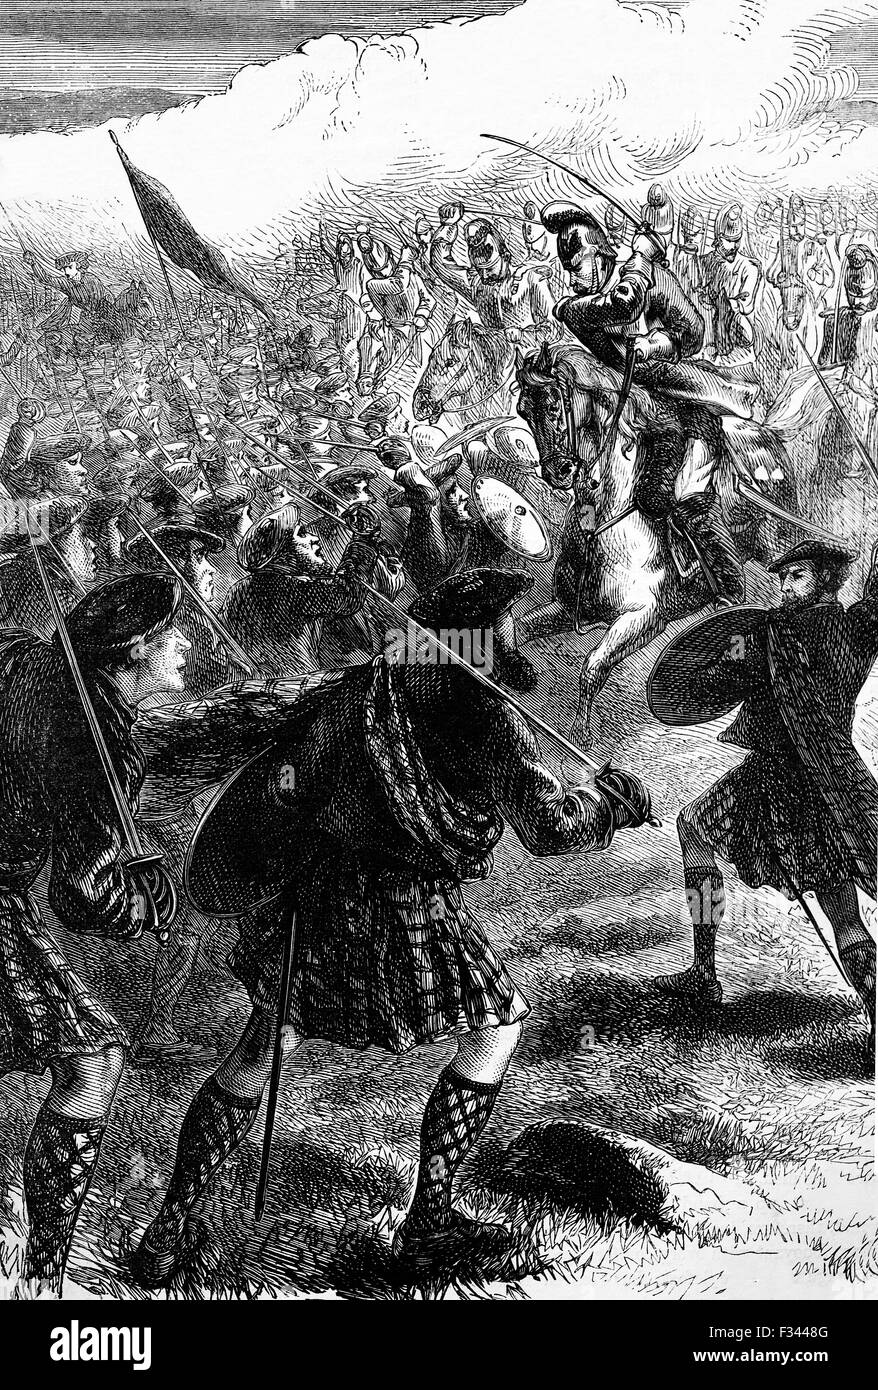 The Battle of Culloden, the final confrontation of the 1745 Jacobite Rising. On 16 April 1746, the Jacobite forces Stock Photo